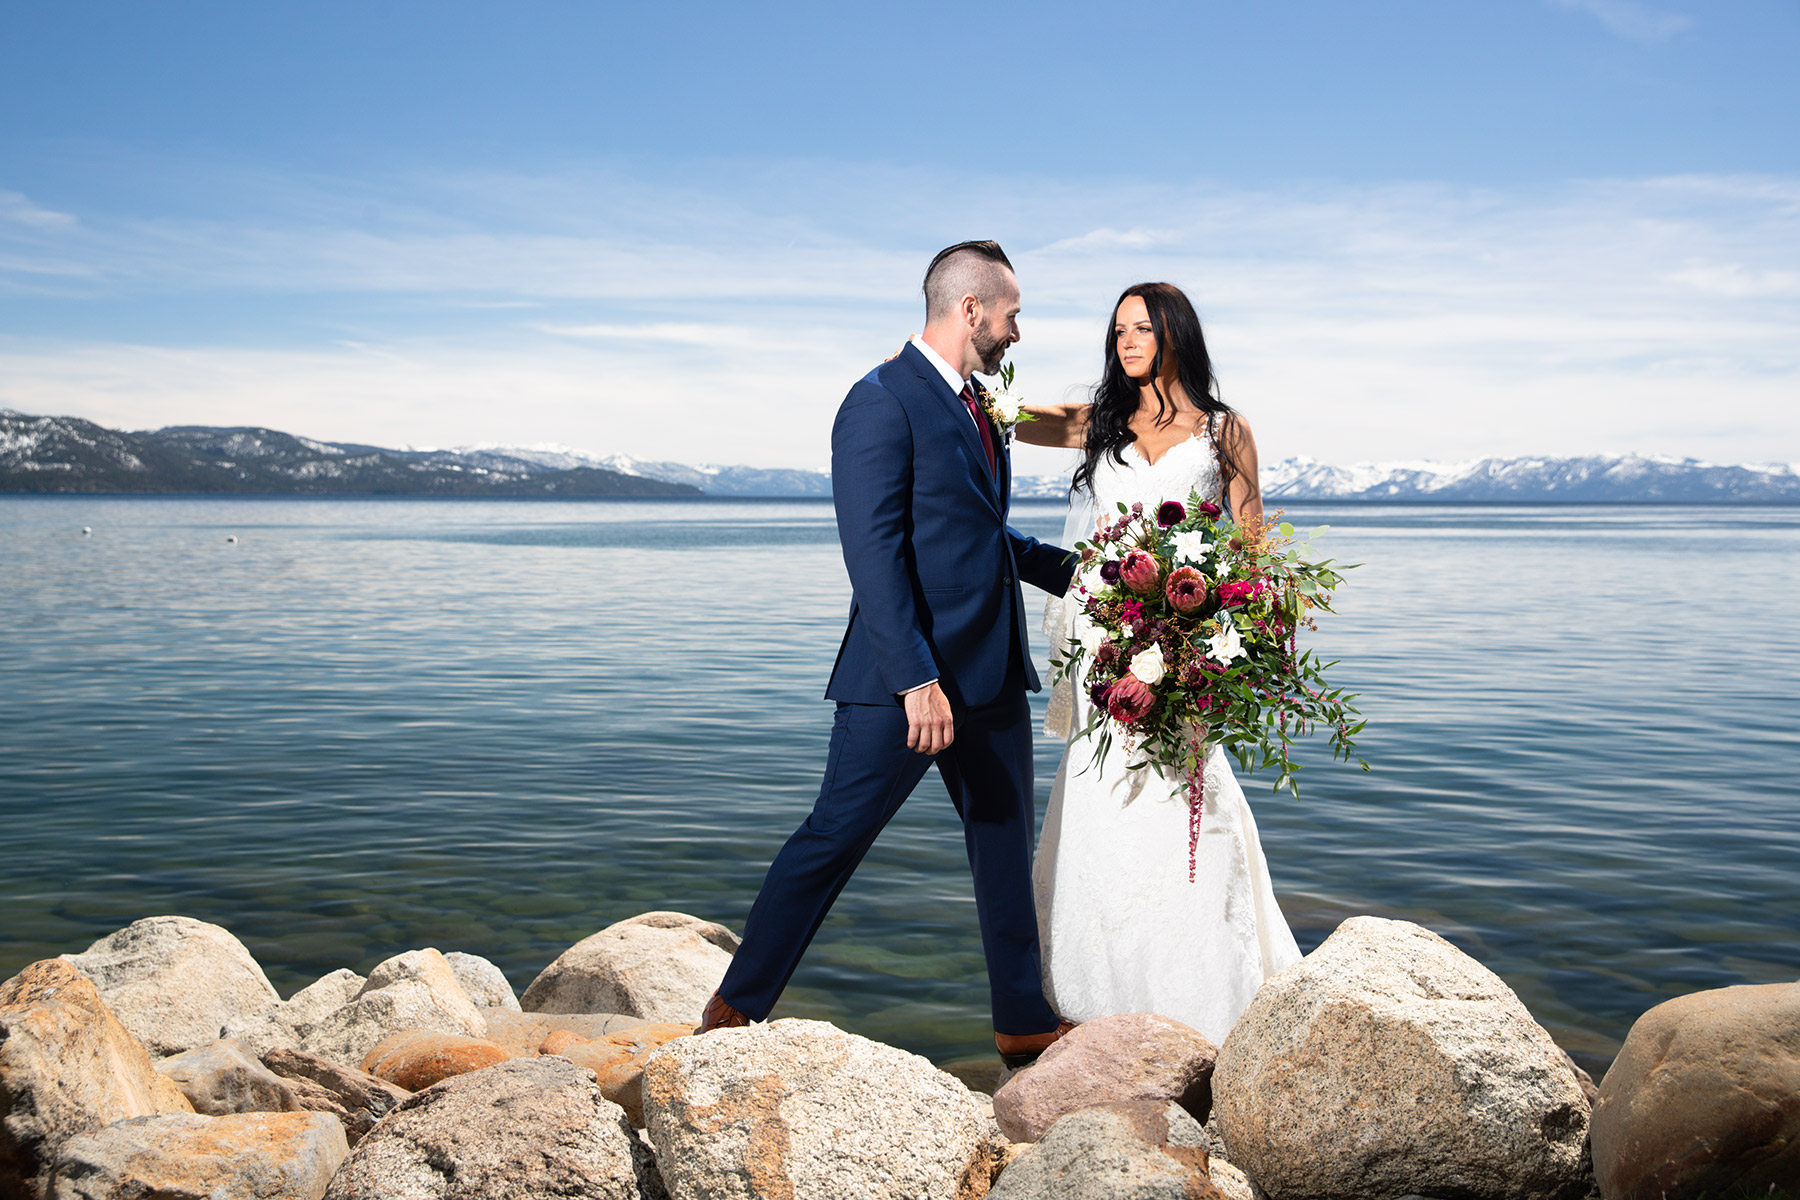 Tahoe-Incline-Village-The-chateau-wedding